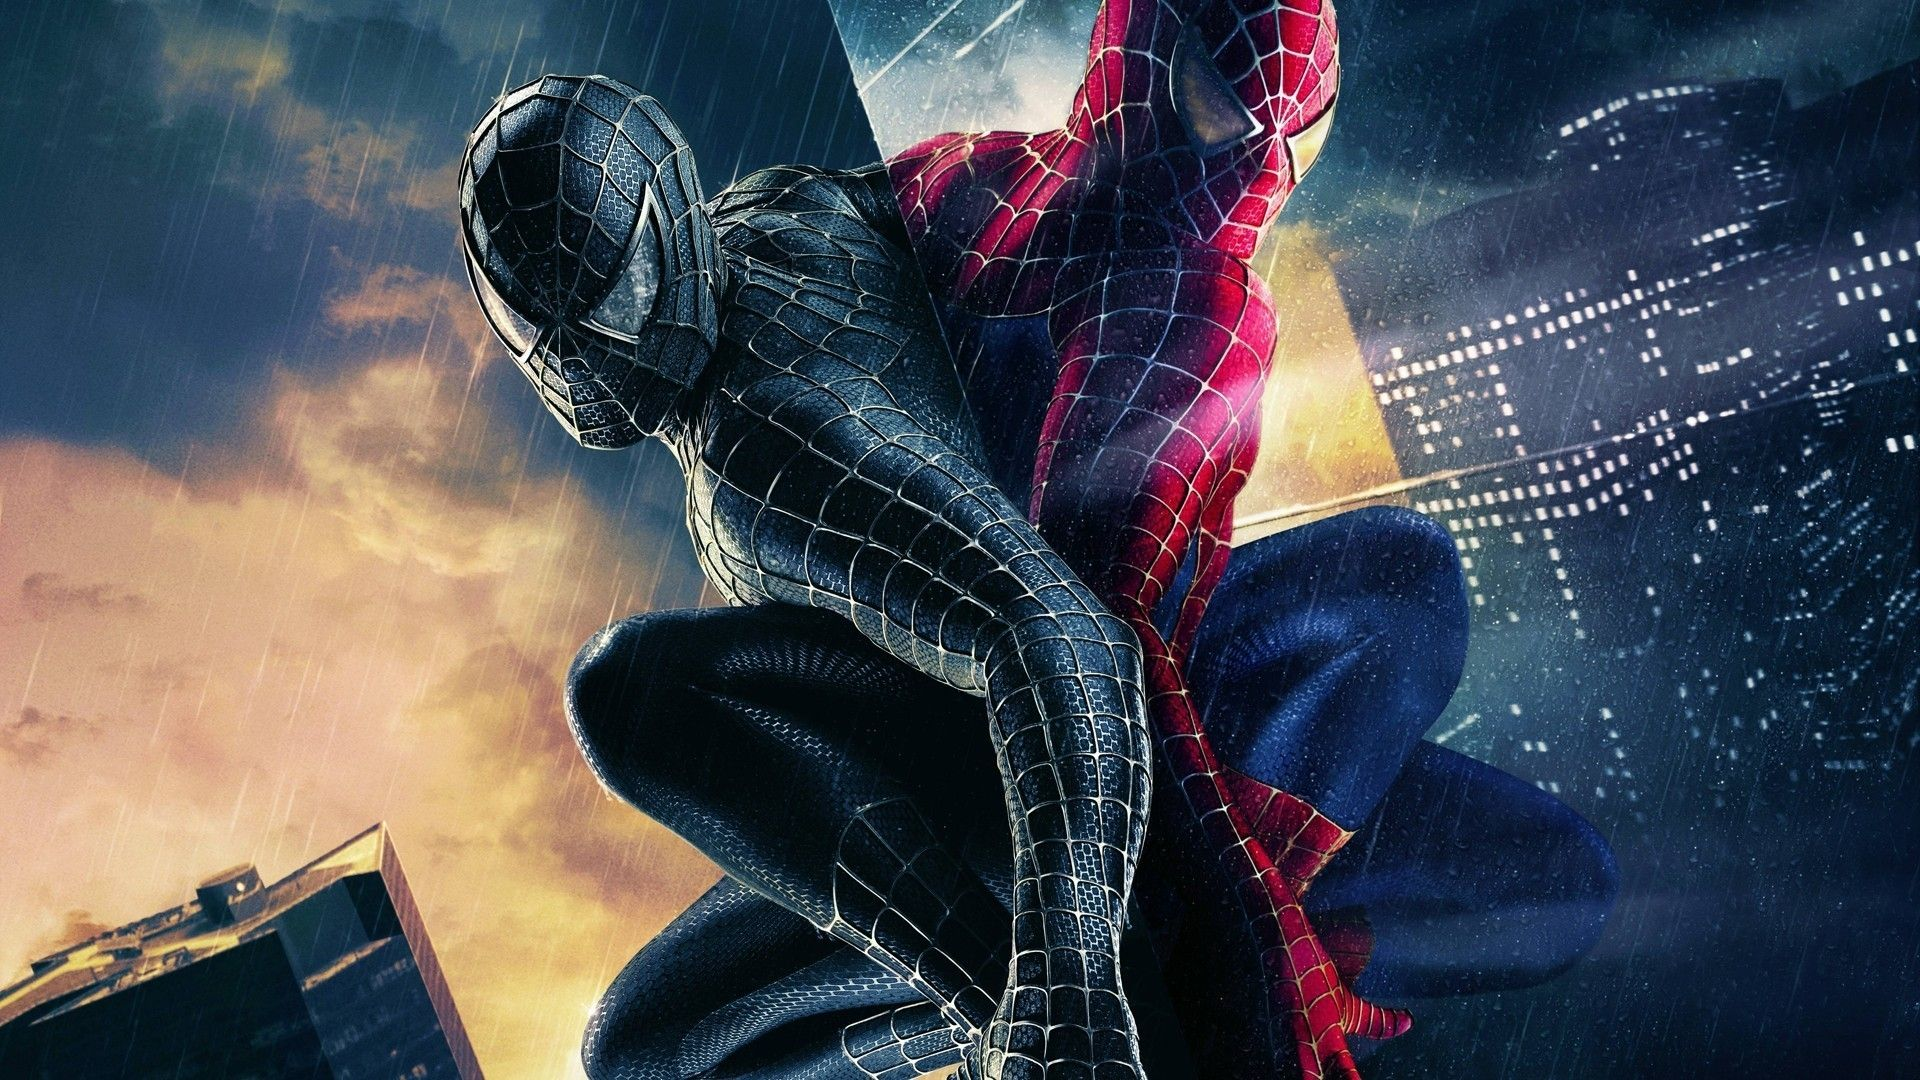 Pin By Bellenepia D On Marvel Spiderman Pictures Spiderman 4